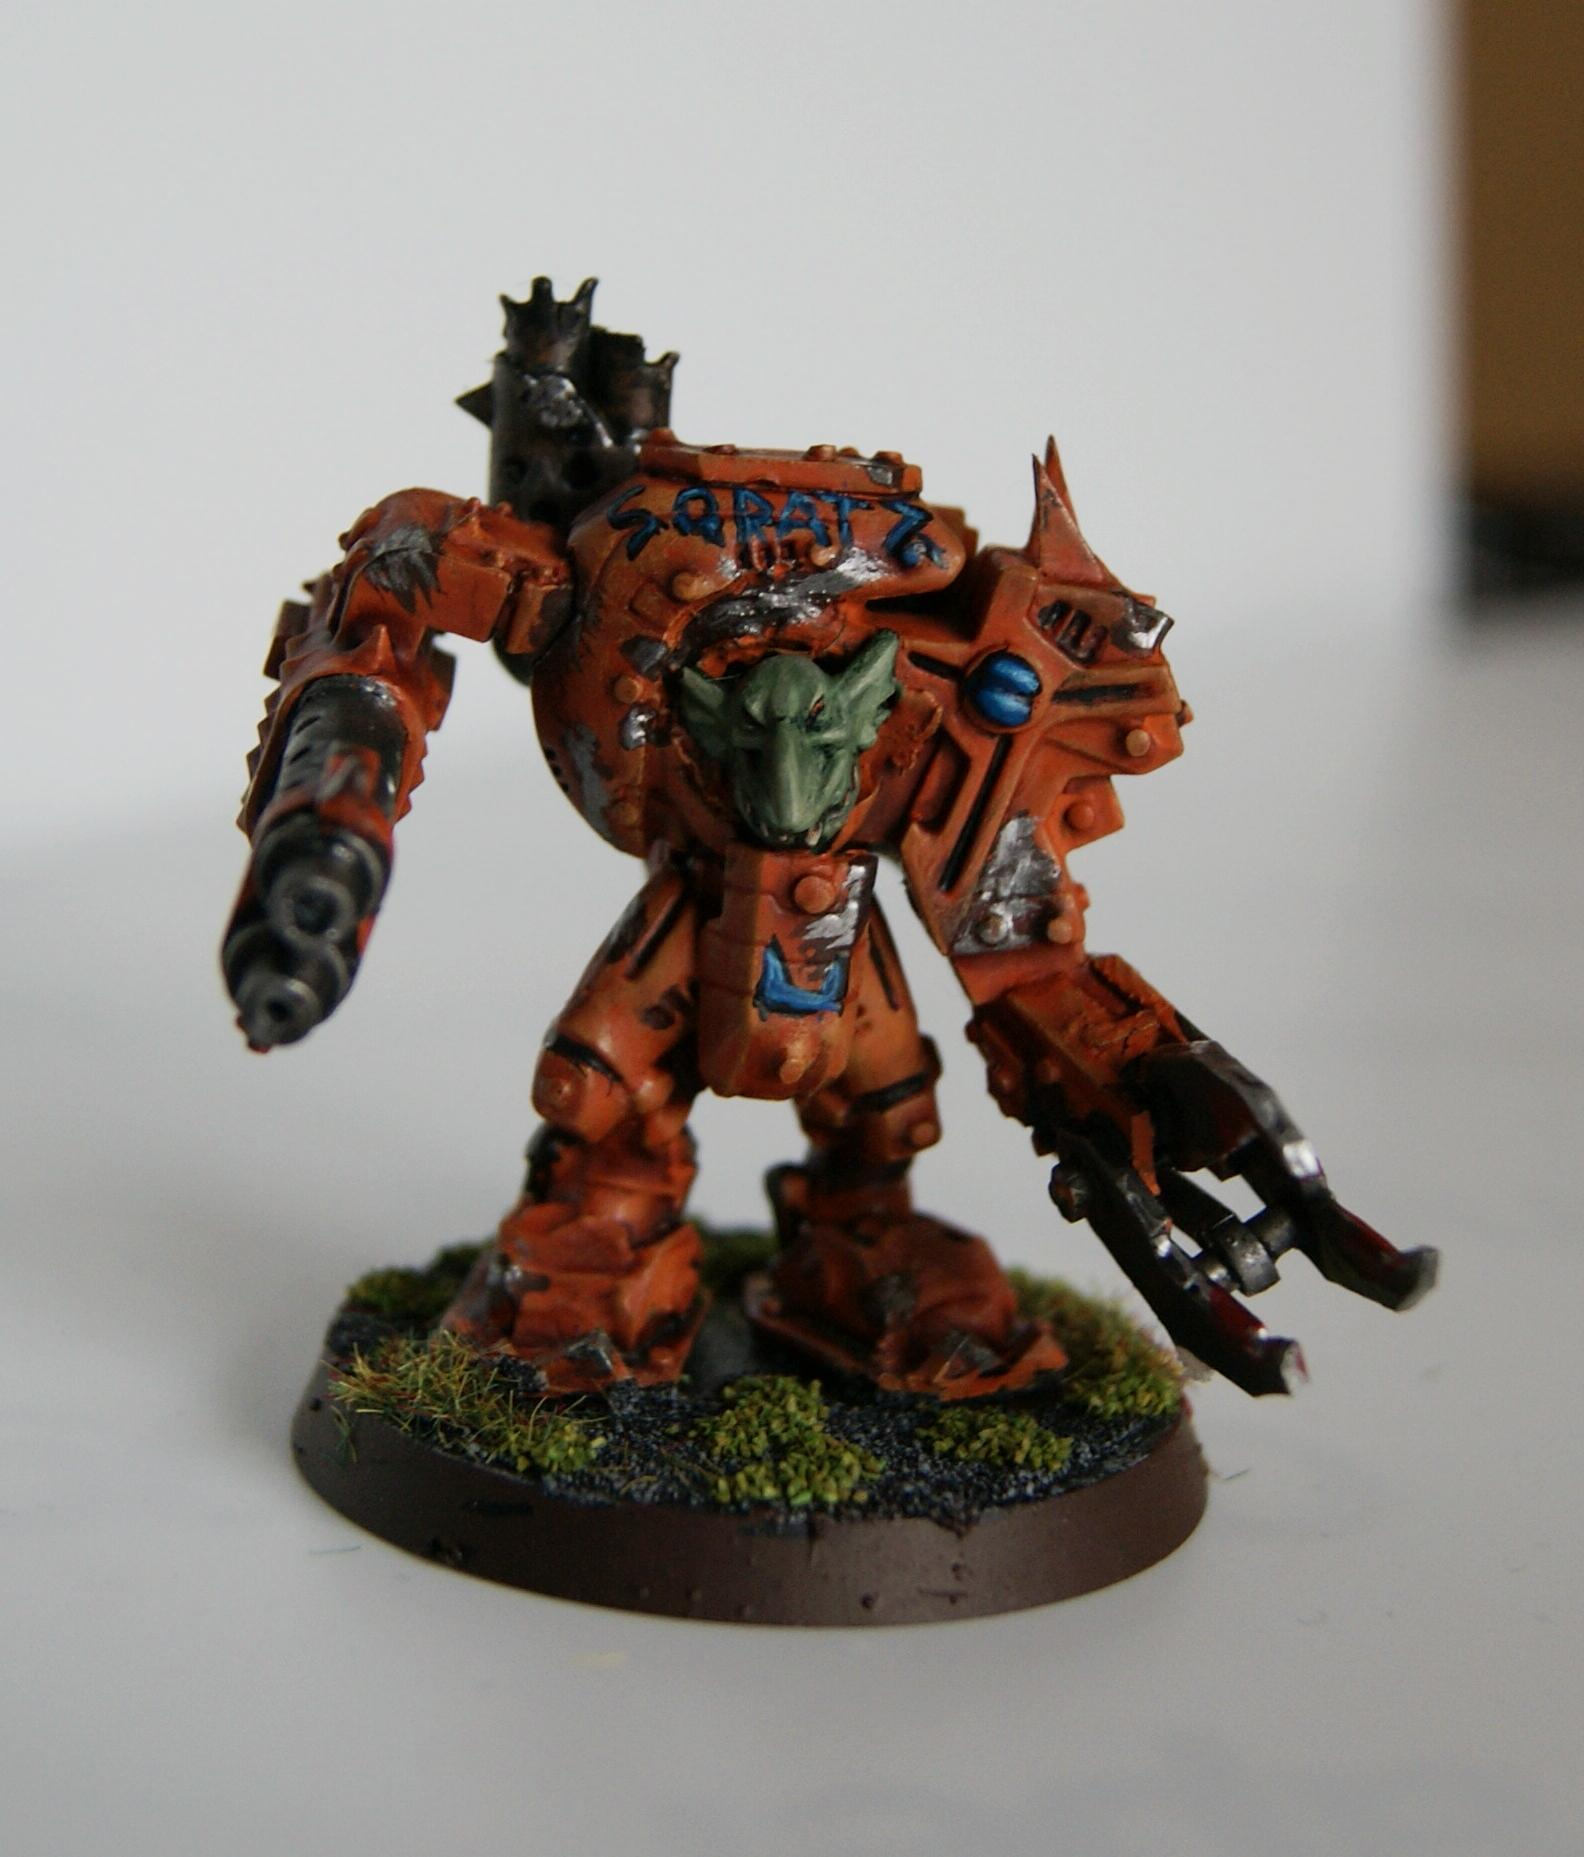 Conversion, Gretchin, Grot Rebellion, Grot Rebels, Grots, Meganob, Orks, Warhammer 40,000